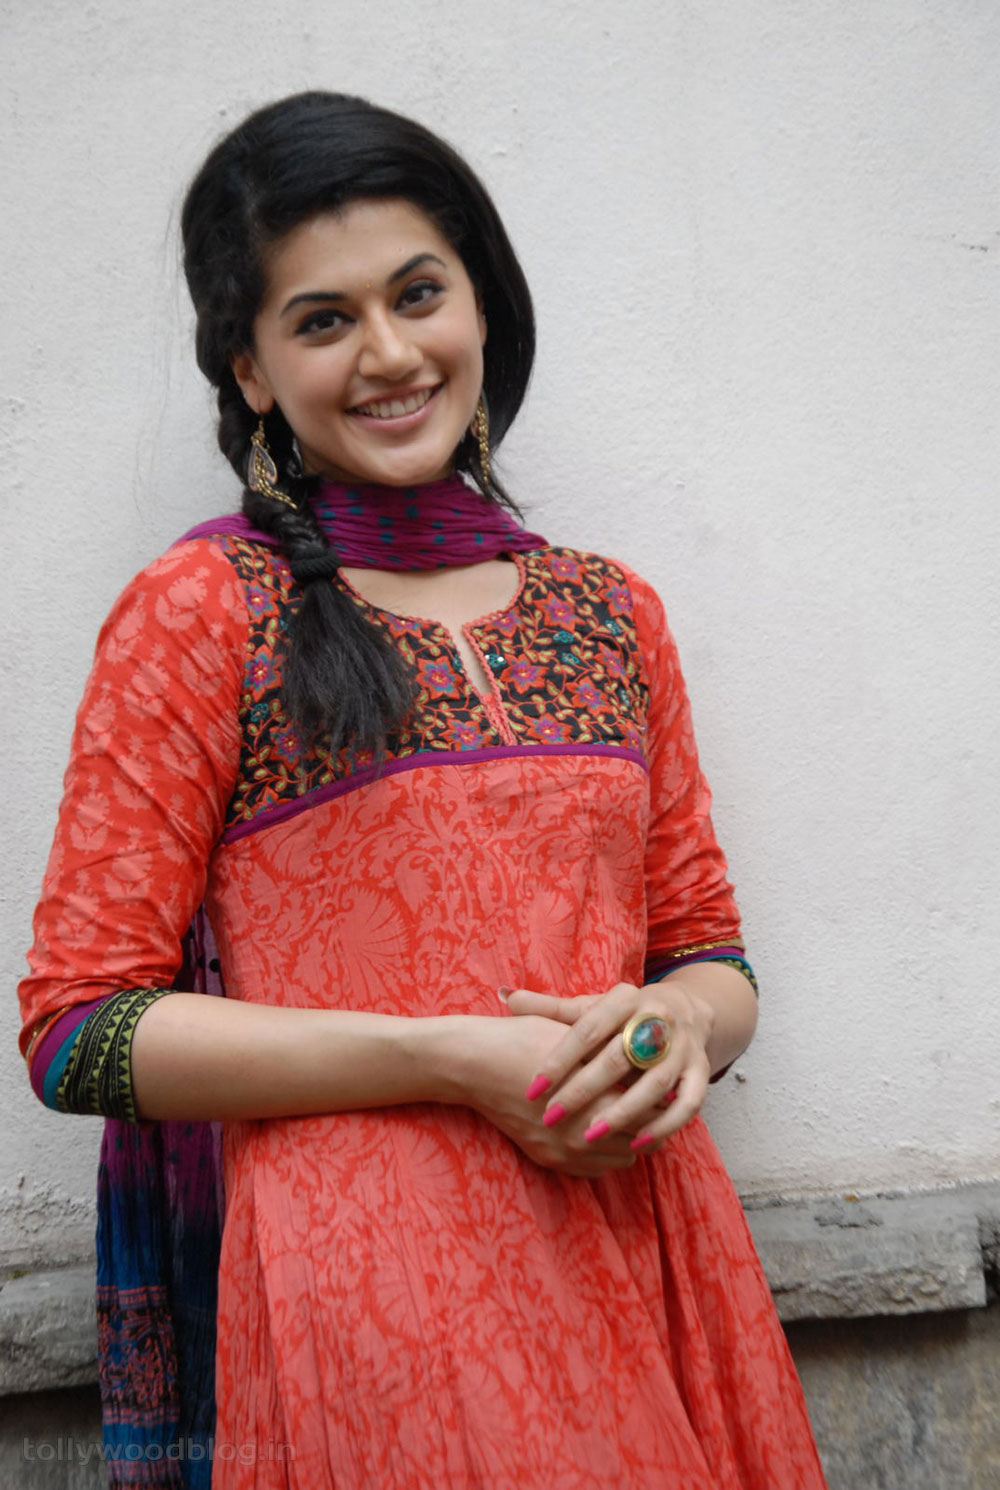 Taapsee Pannu Photos - Telugu Actress photos, images, gallery Tapasee pannu new photos